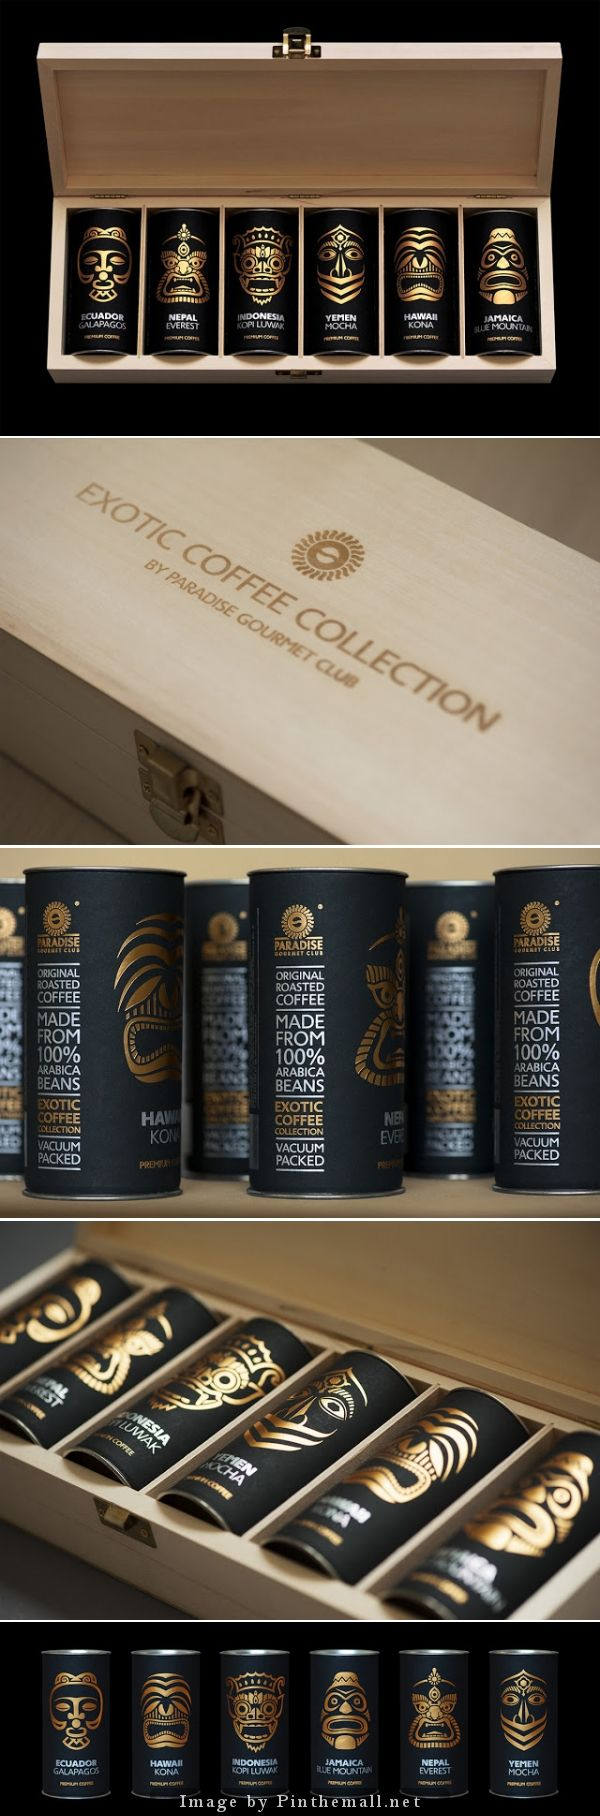 Exotic coffee collection by Paradise